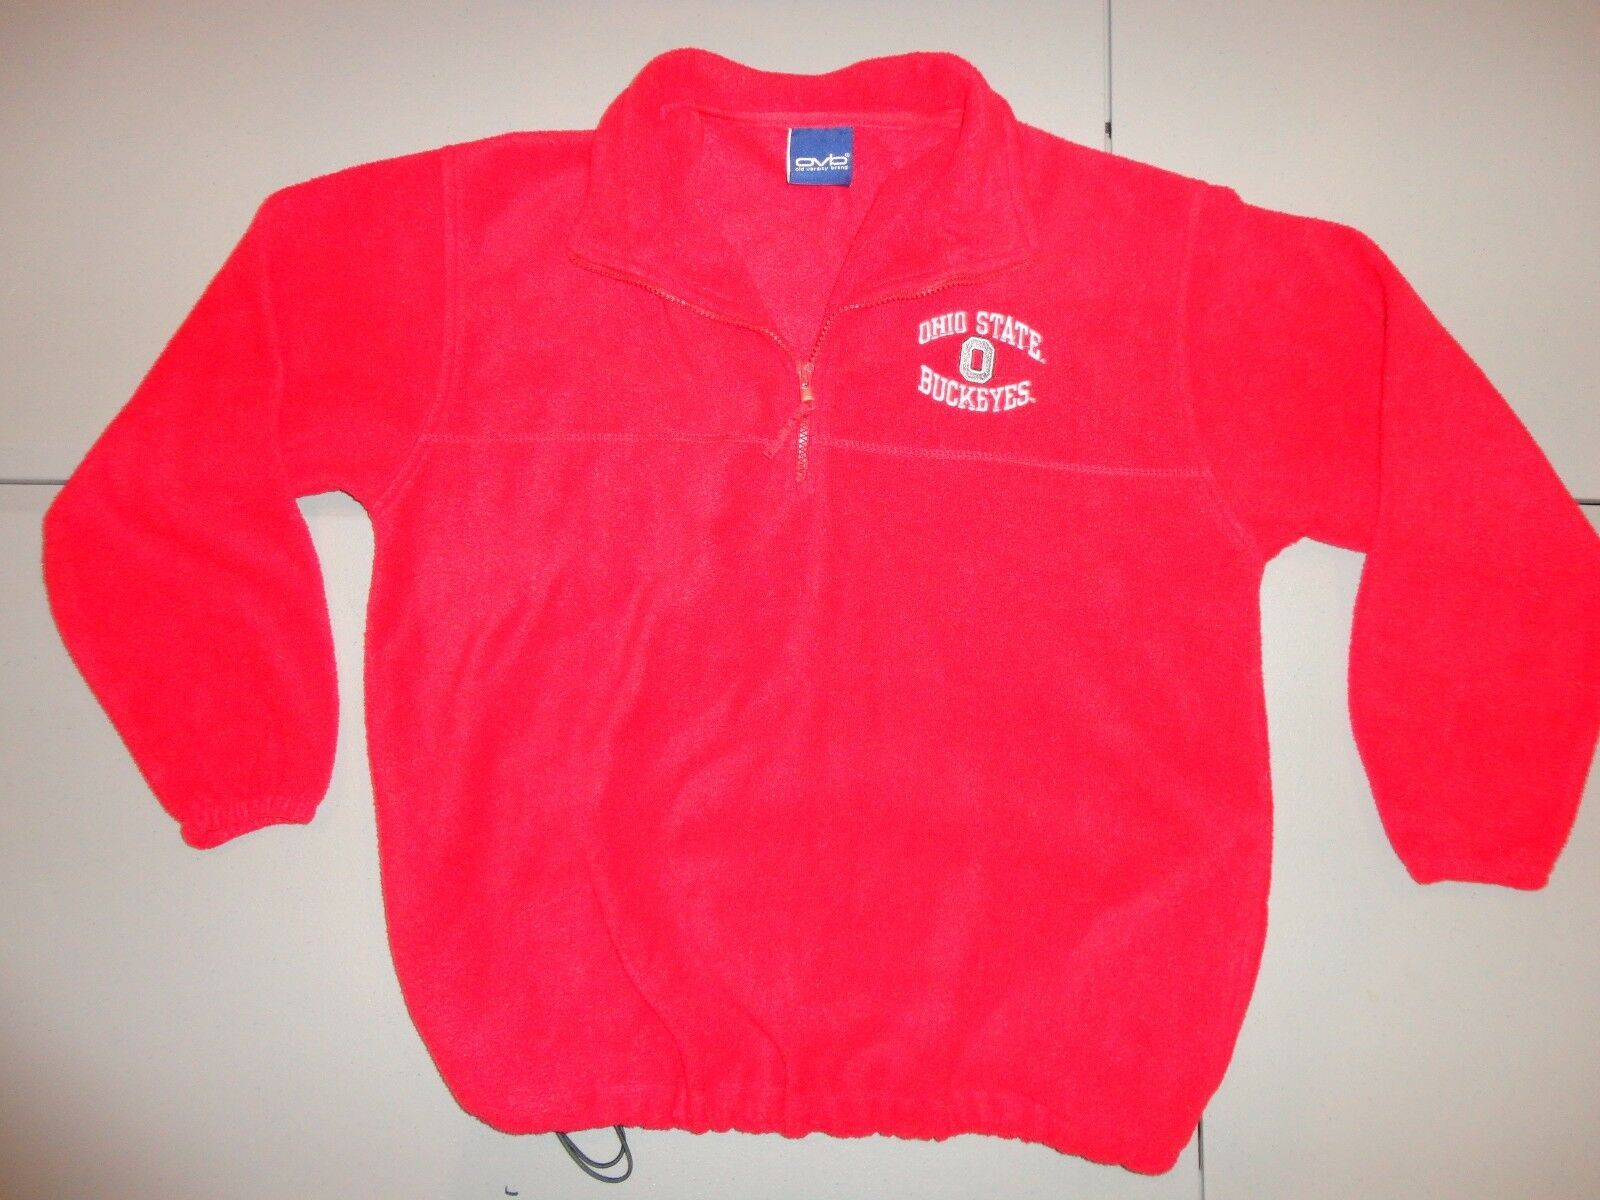 Ohio State Buckeyes NCAA Red Embroidered Fleece Pullover Jacket Youth L (14-16) - $24.39